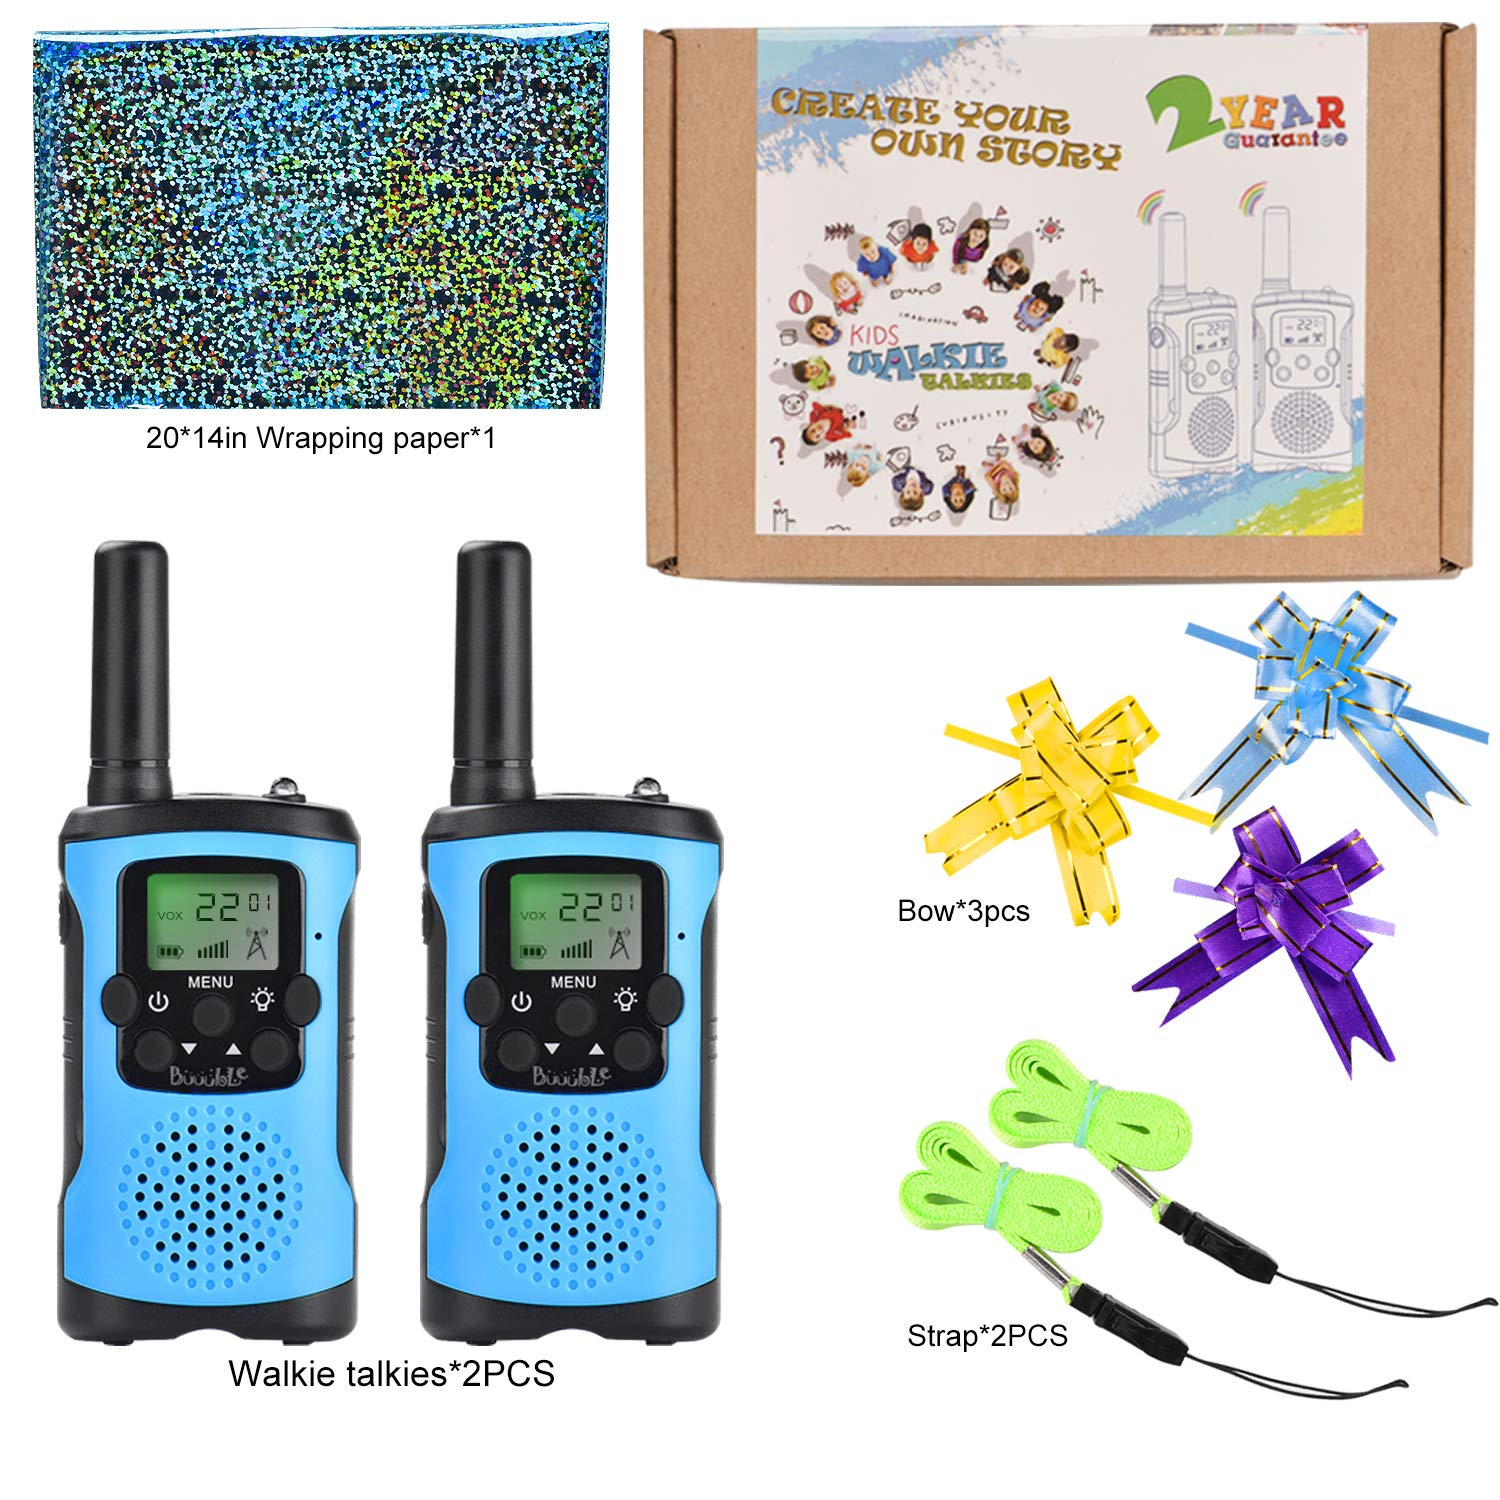 Walkie Talkies for Kids 22 Channel 3 Mile Long Range Many People Use It to Prevent Children's Myopia and Away from Electronic Games Best Birthday Gifts for 4-6 Year Old Boys Girls More Fun Game (Blue) by Buuuble (Image #7)